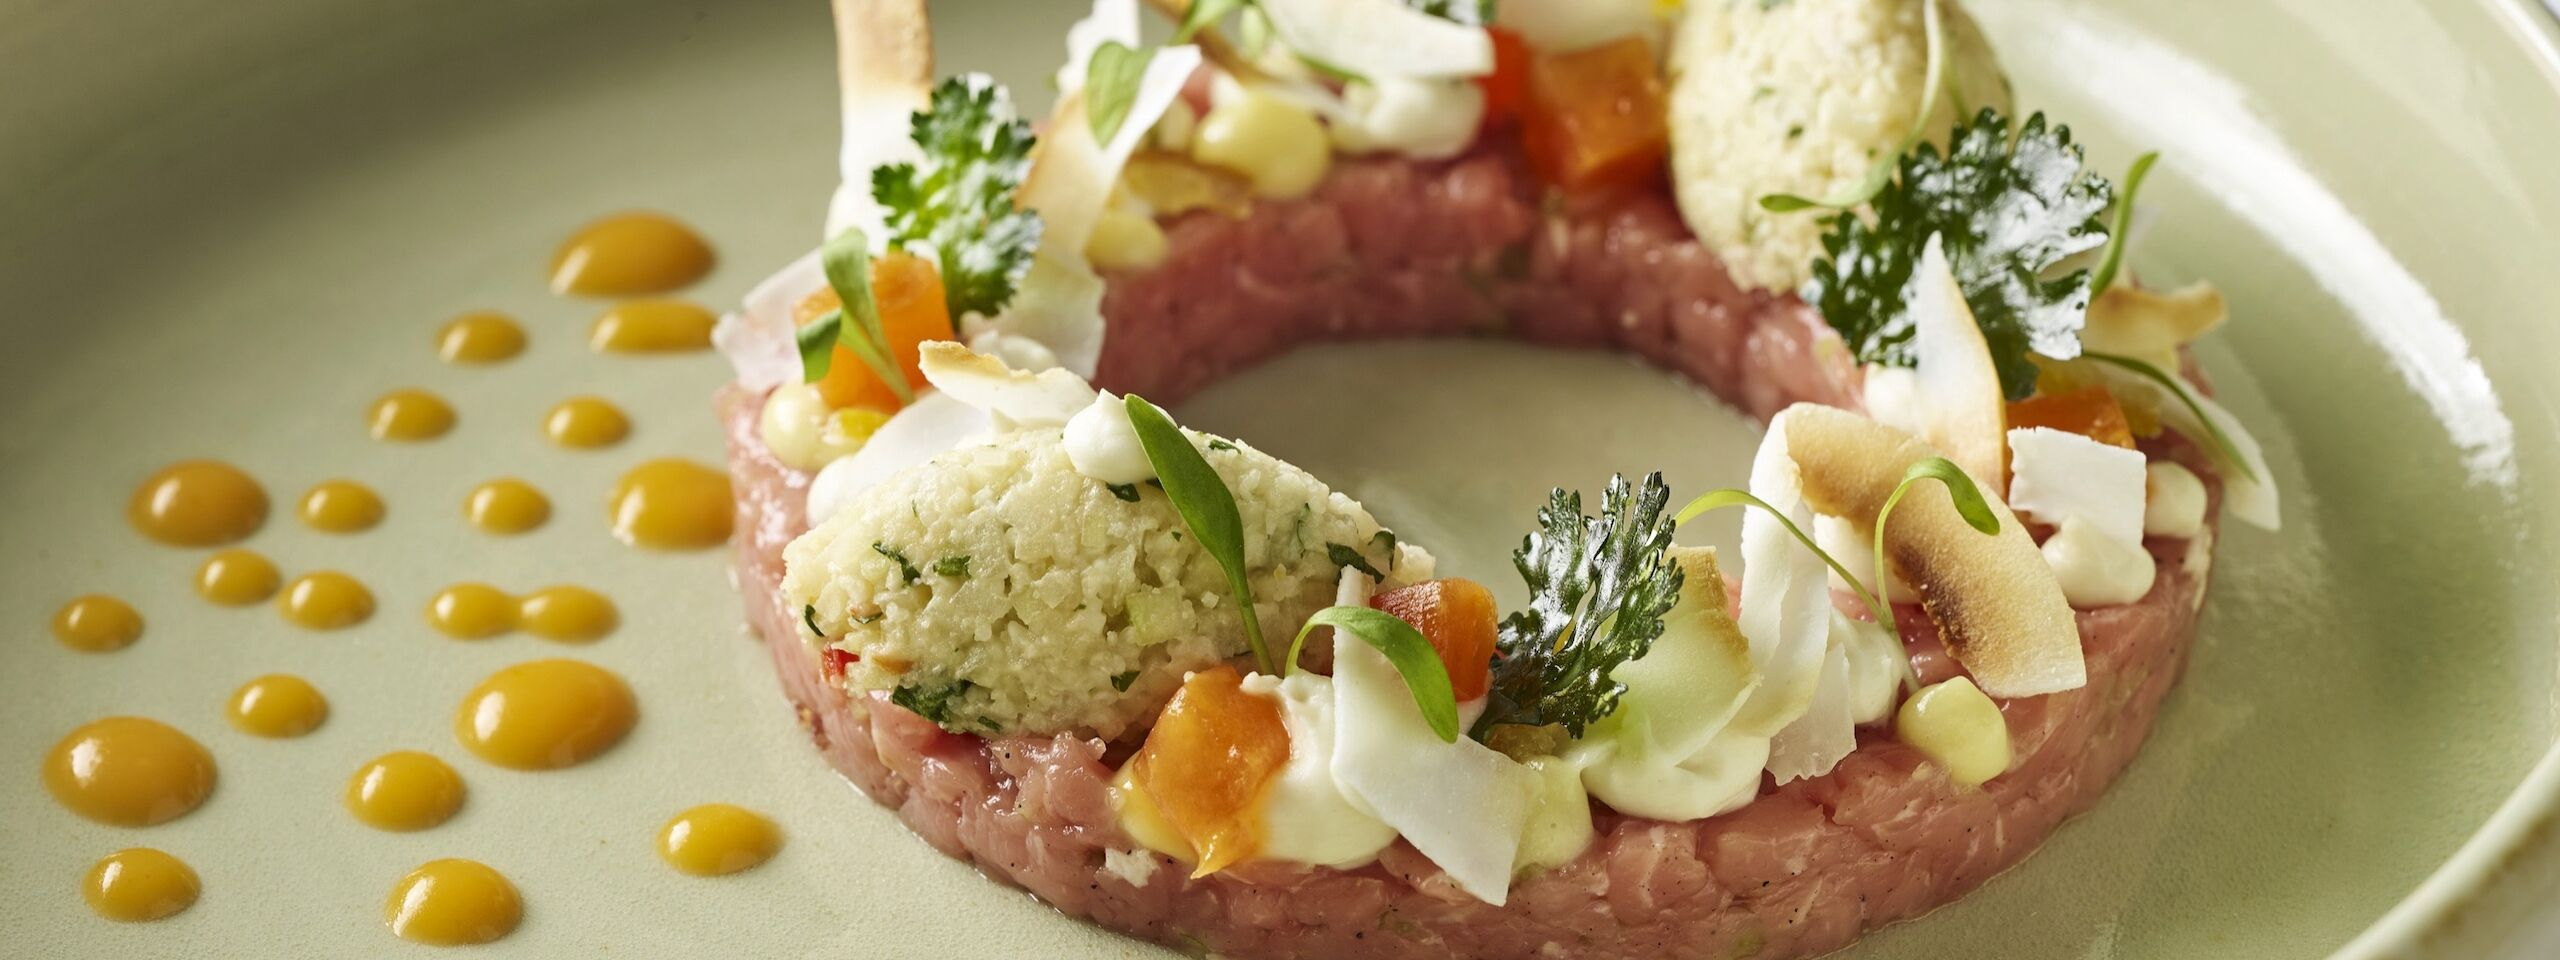 Traube Tonbach Koehlerstube Food Tartar Coconut 3